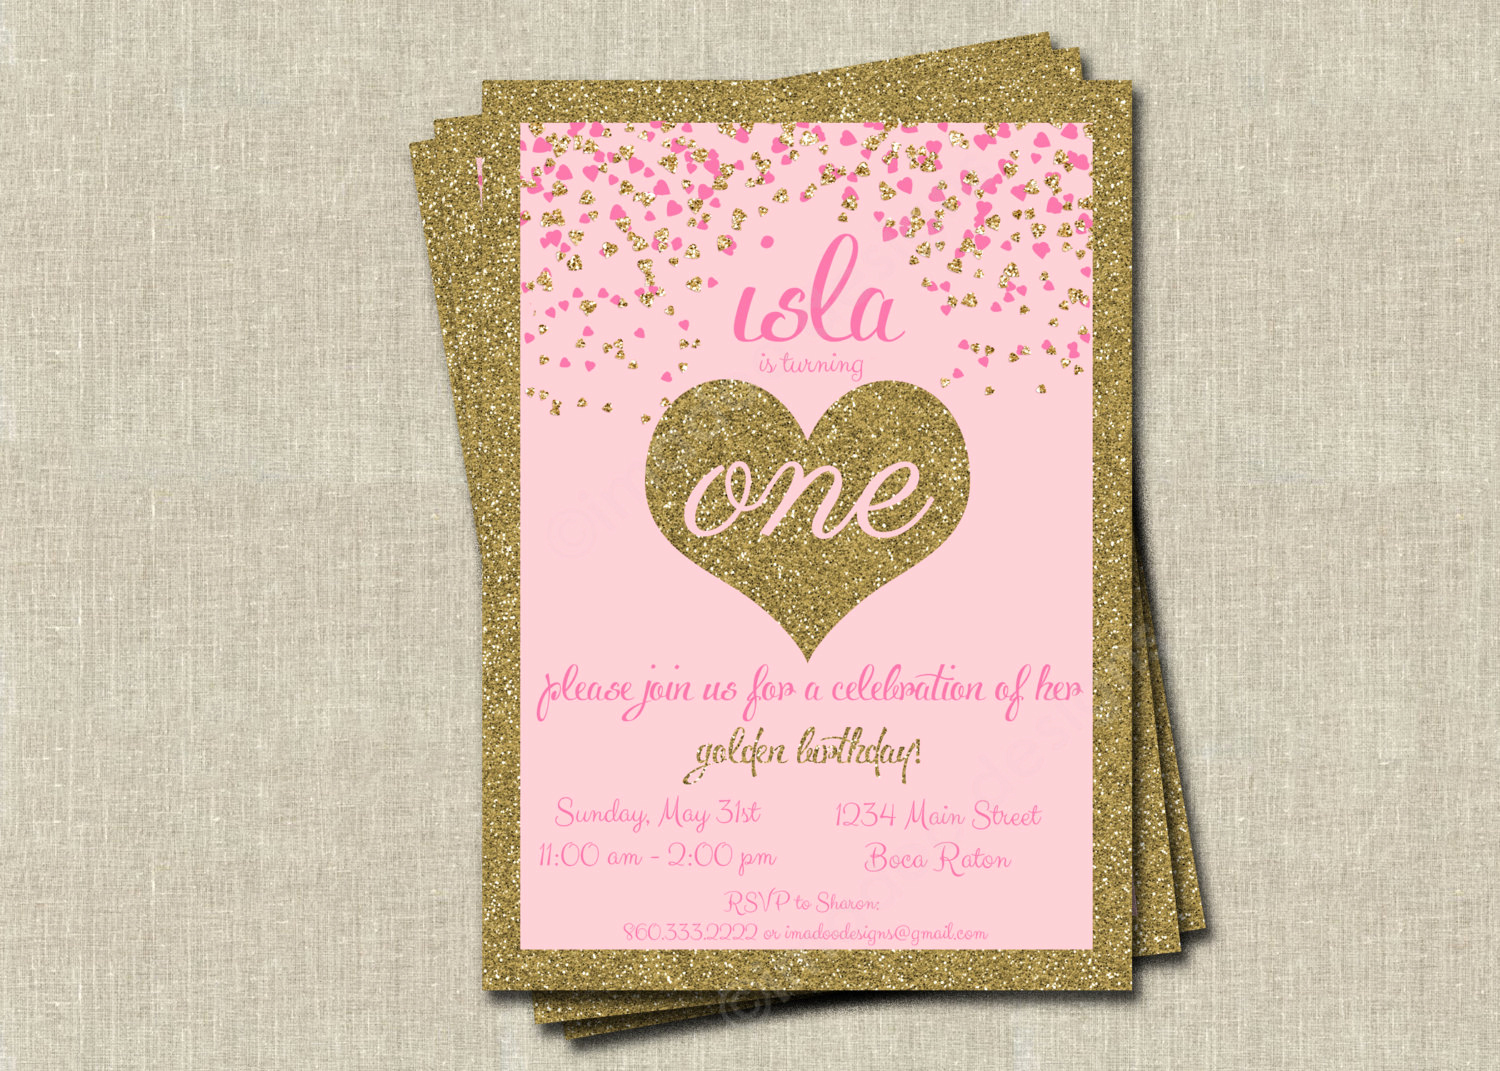 Golden Birthday Invitation Wording Inspirational Golden Birthday Invitations Printable Digital File